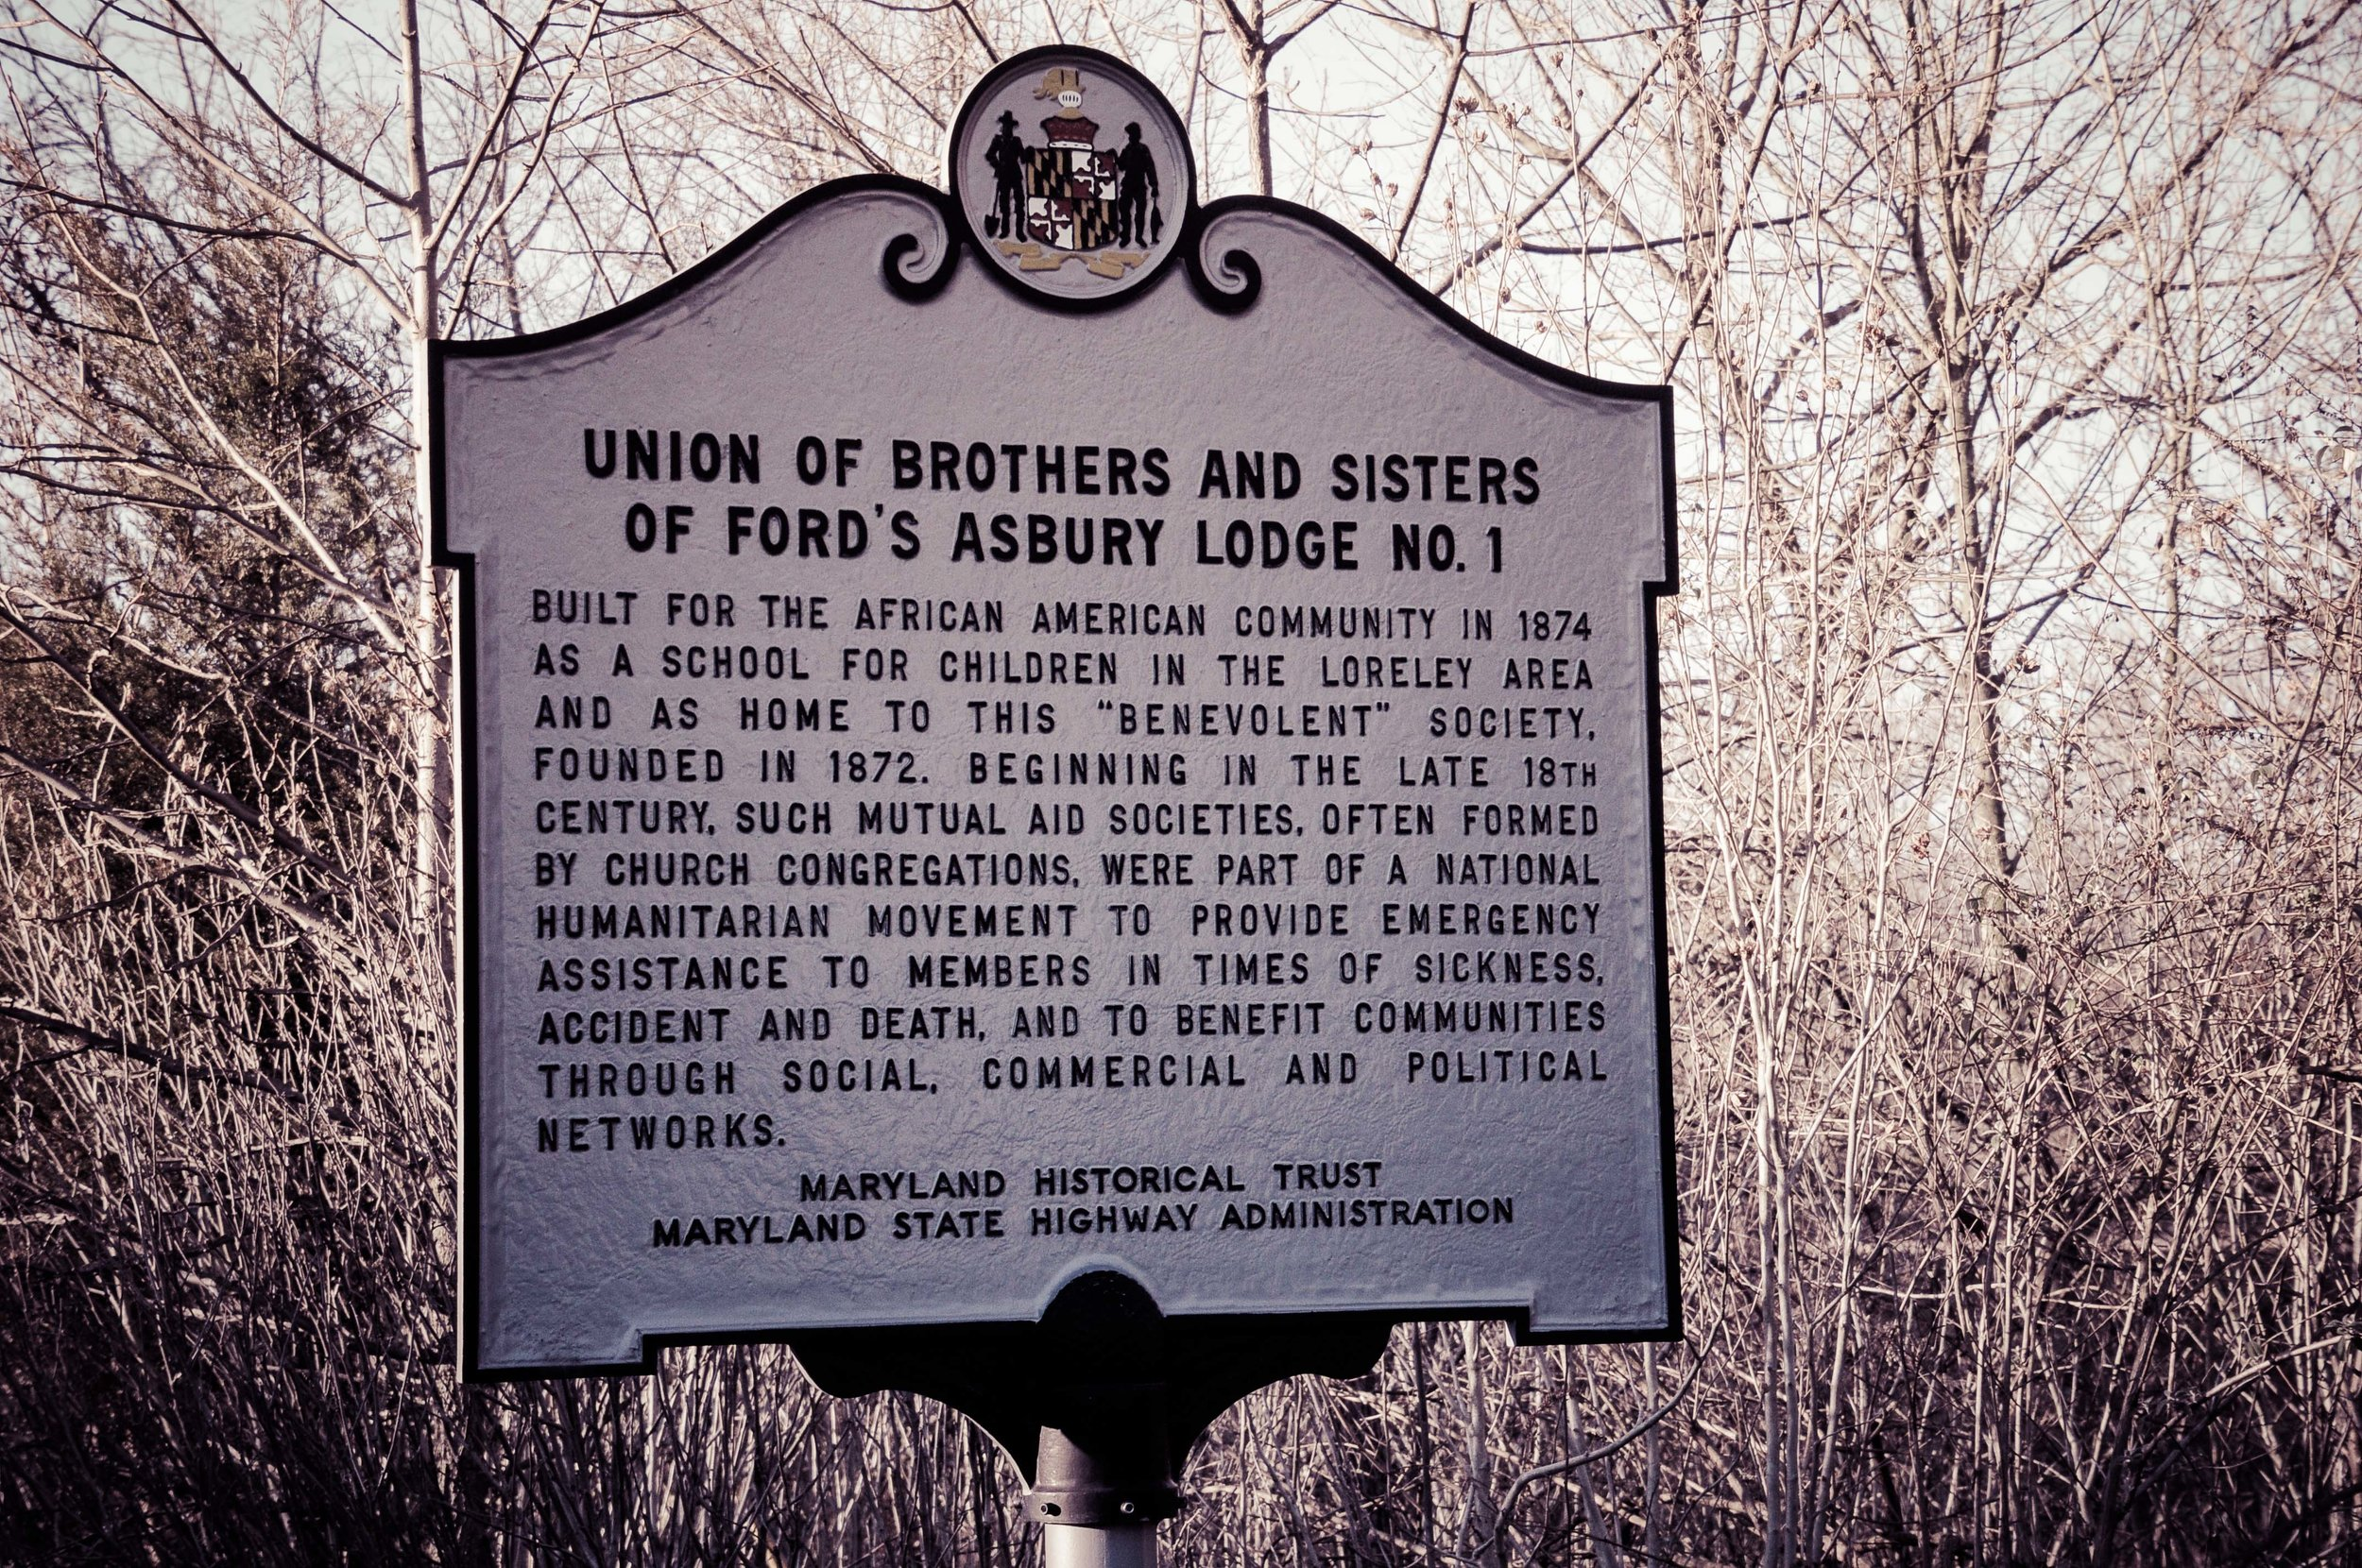 Historical marker for Union of Brothers and Sisters Lodge Photo: Rose Anderson, 2019